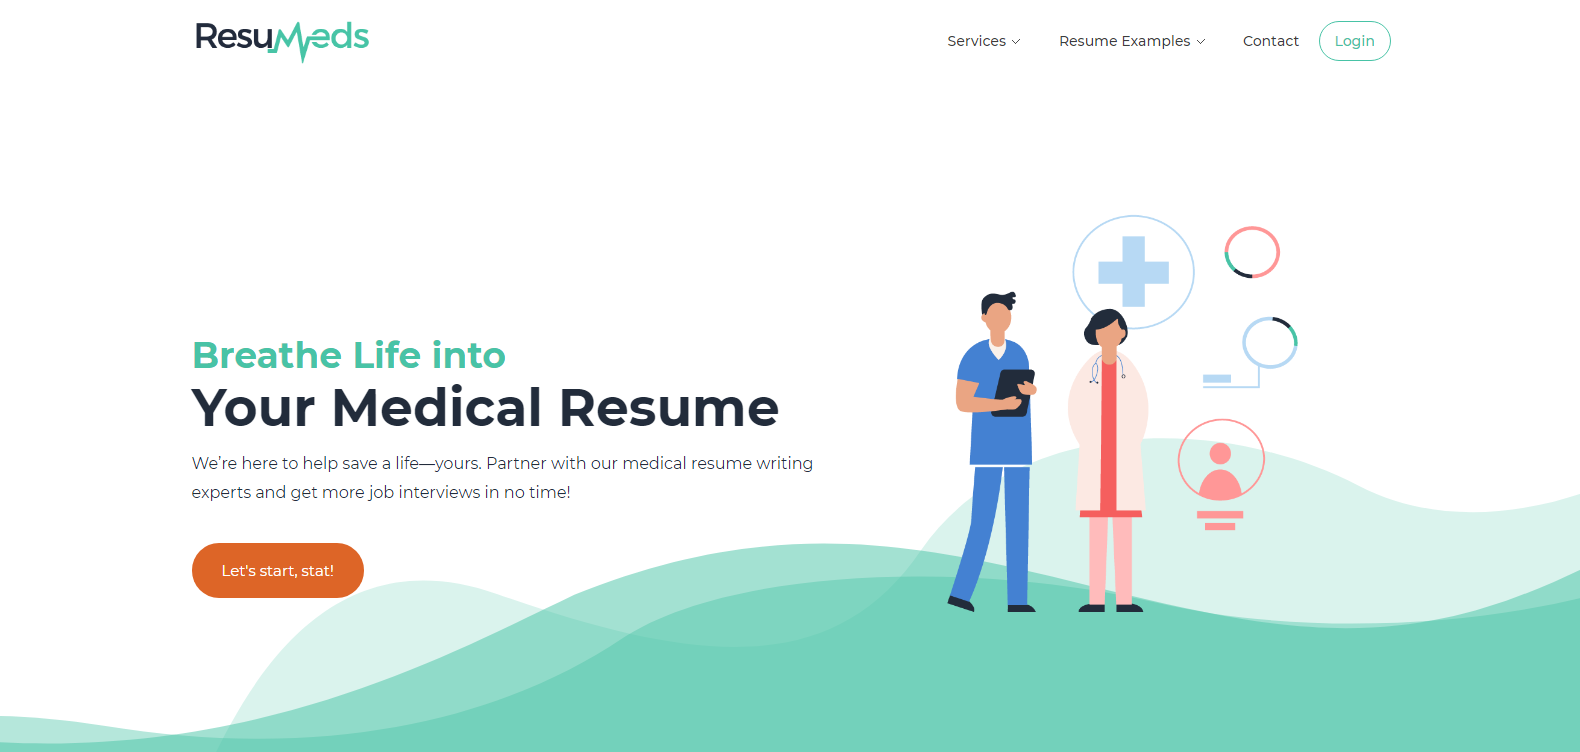 Screenshot of ResuMeds' banner with animated medical professionals looking for the 10 best medical resume writing services